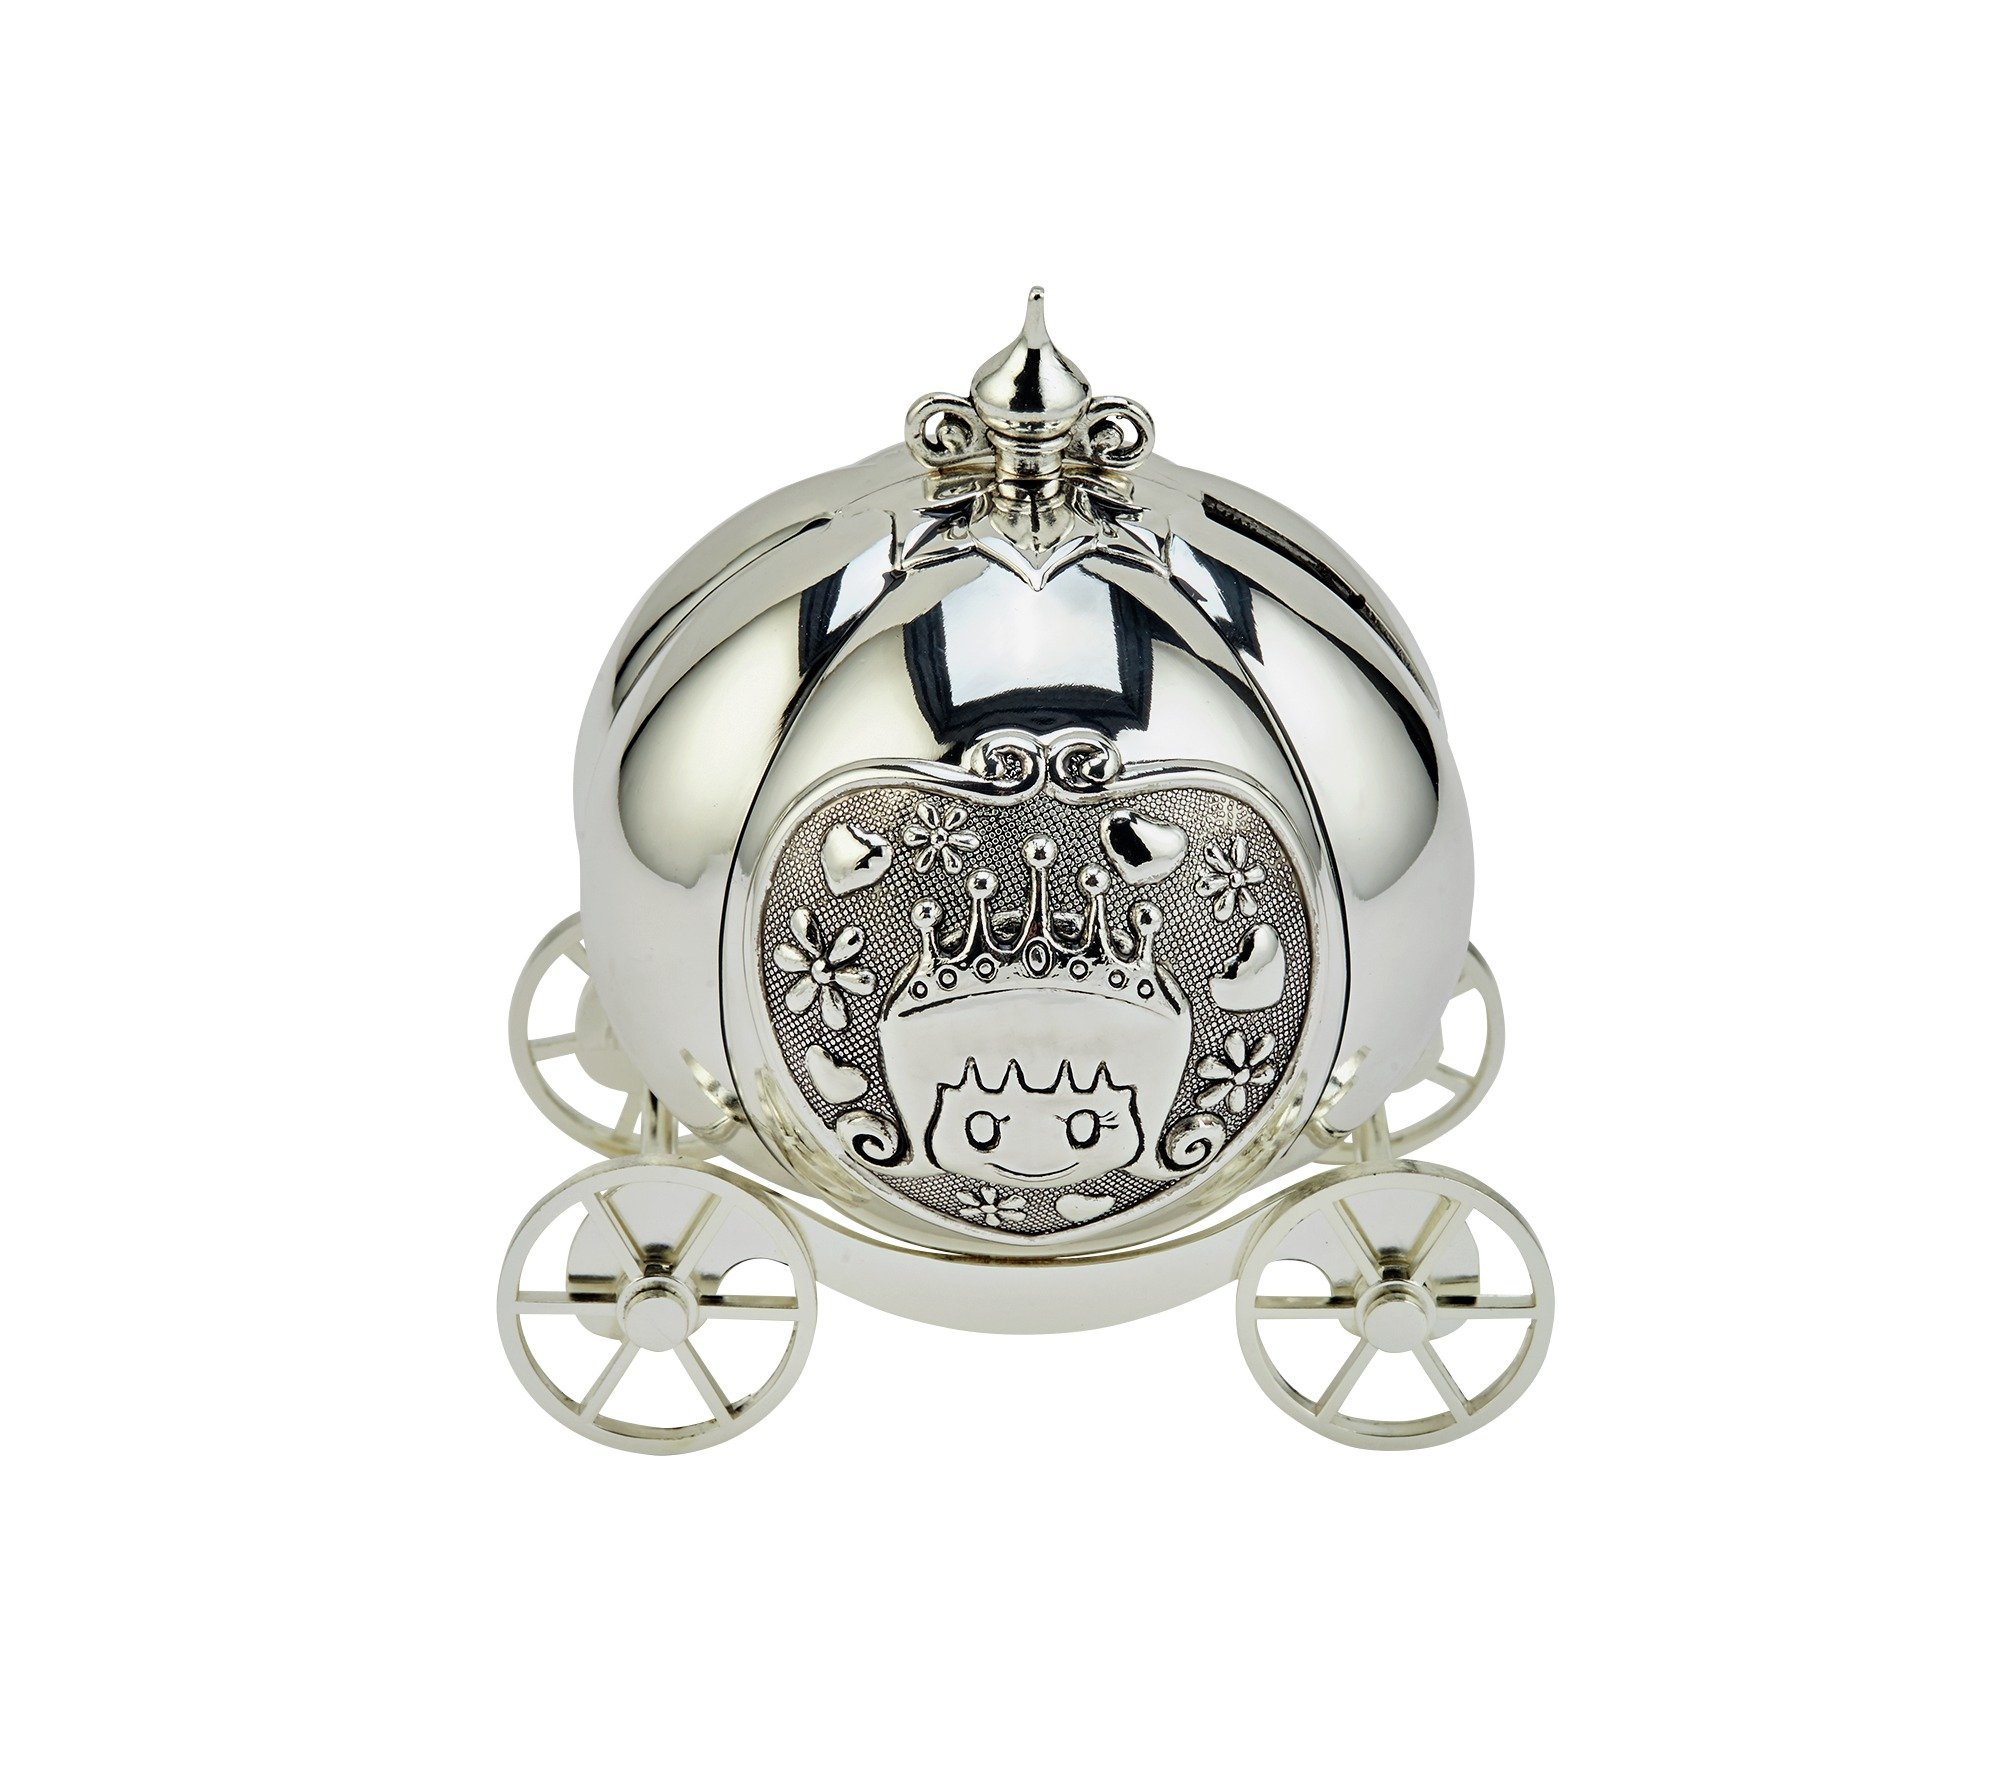 Bambino Silver Plated Fairytale Carriage Money Box.